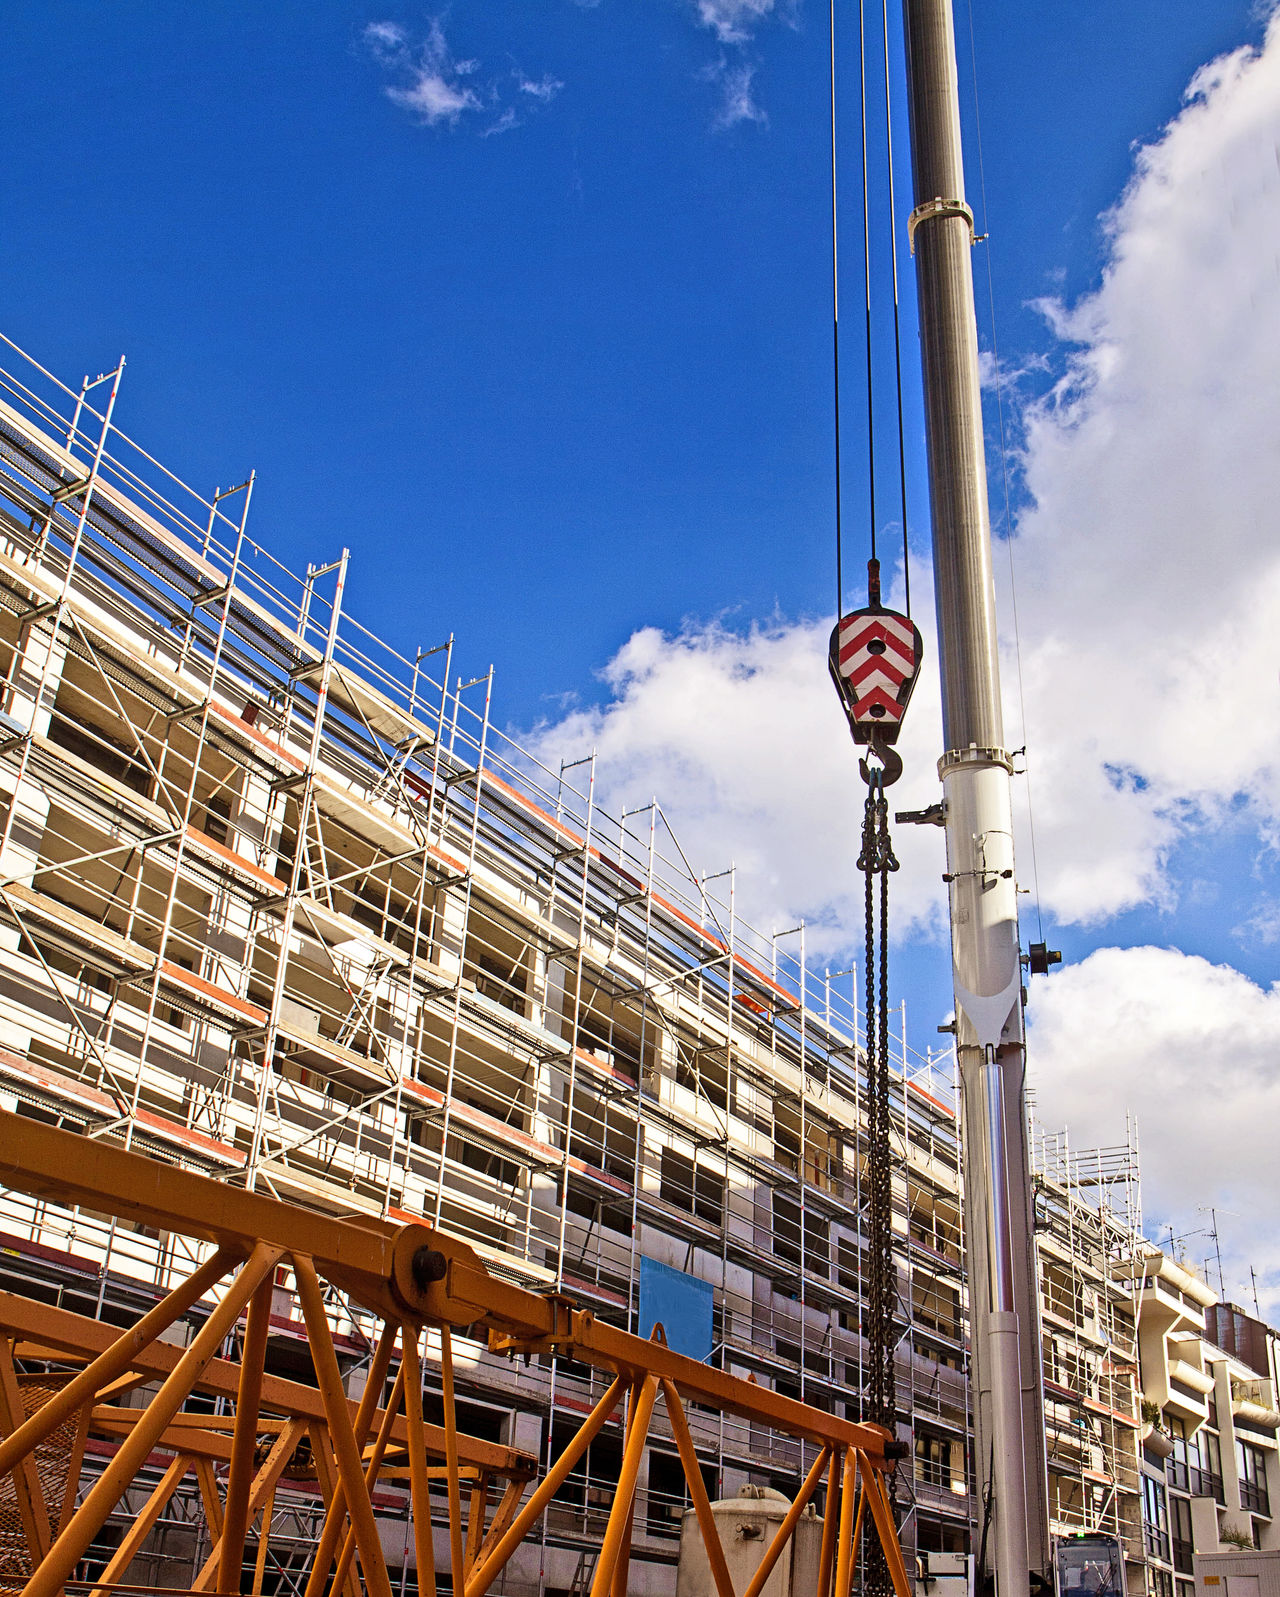 Building under construction Apartments Architecture Blue Building Exterior Built Structure Business Cloud - Sky Commercial Commercial Dock Contructionwork Crane Day Engineering Industry Low Angle View No People Outdoors Real Estate Residential Structure Scaffolding Sky Urban Work